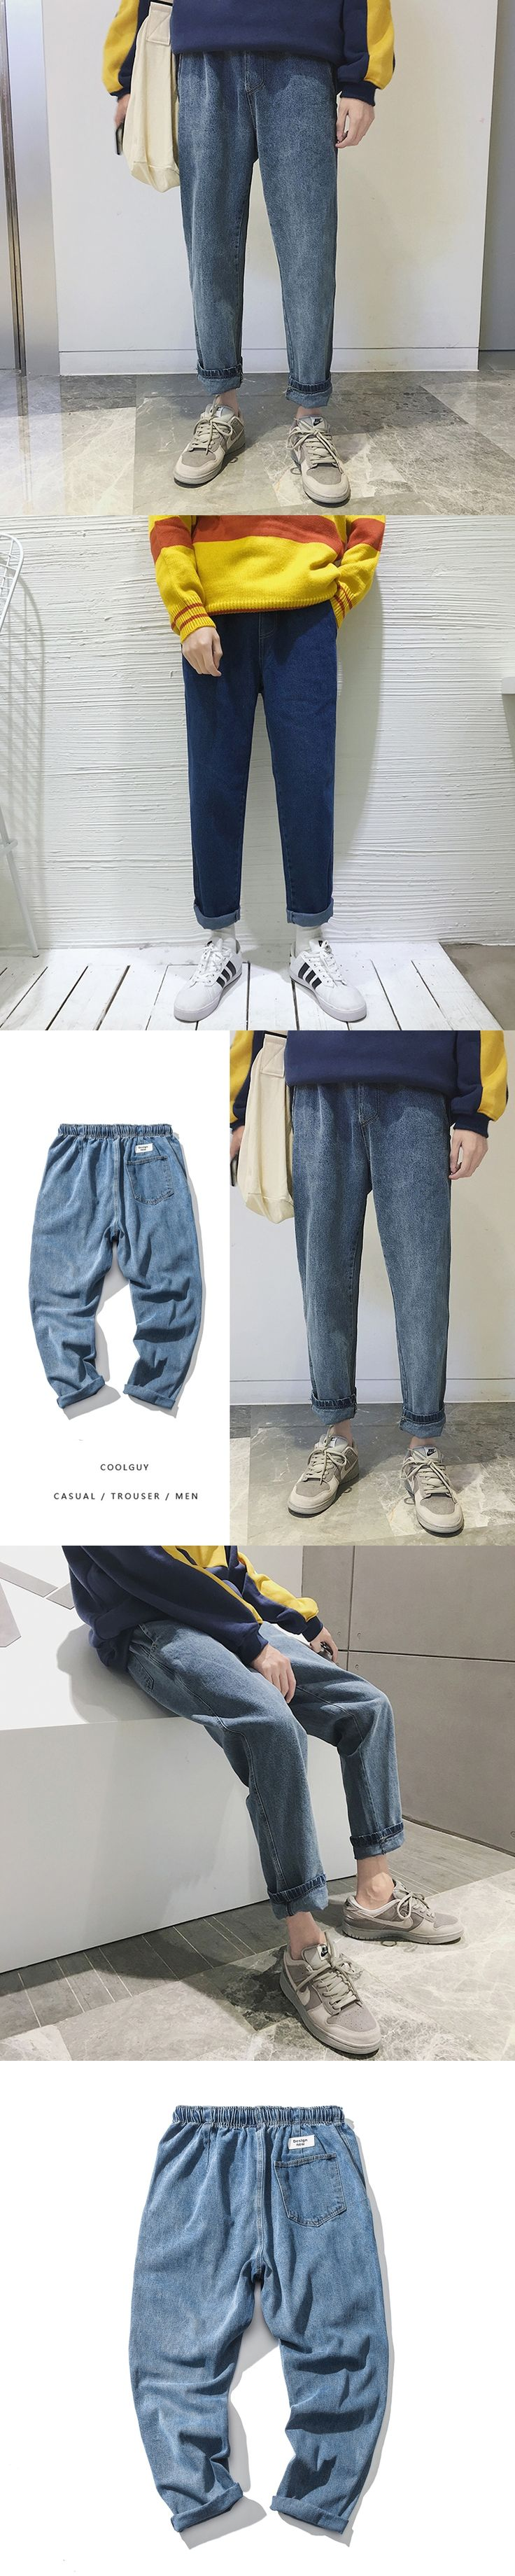 2017 Winter New Men's Korean Style Wide Leg Jeans Elastic Waist Solid Color High Quality Pants Loose Casual Warm Trousers M-2XL